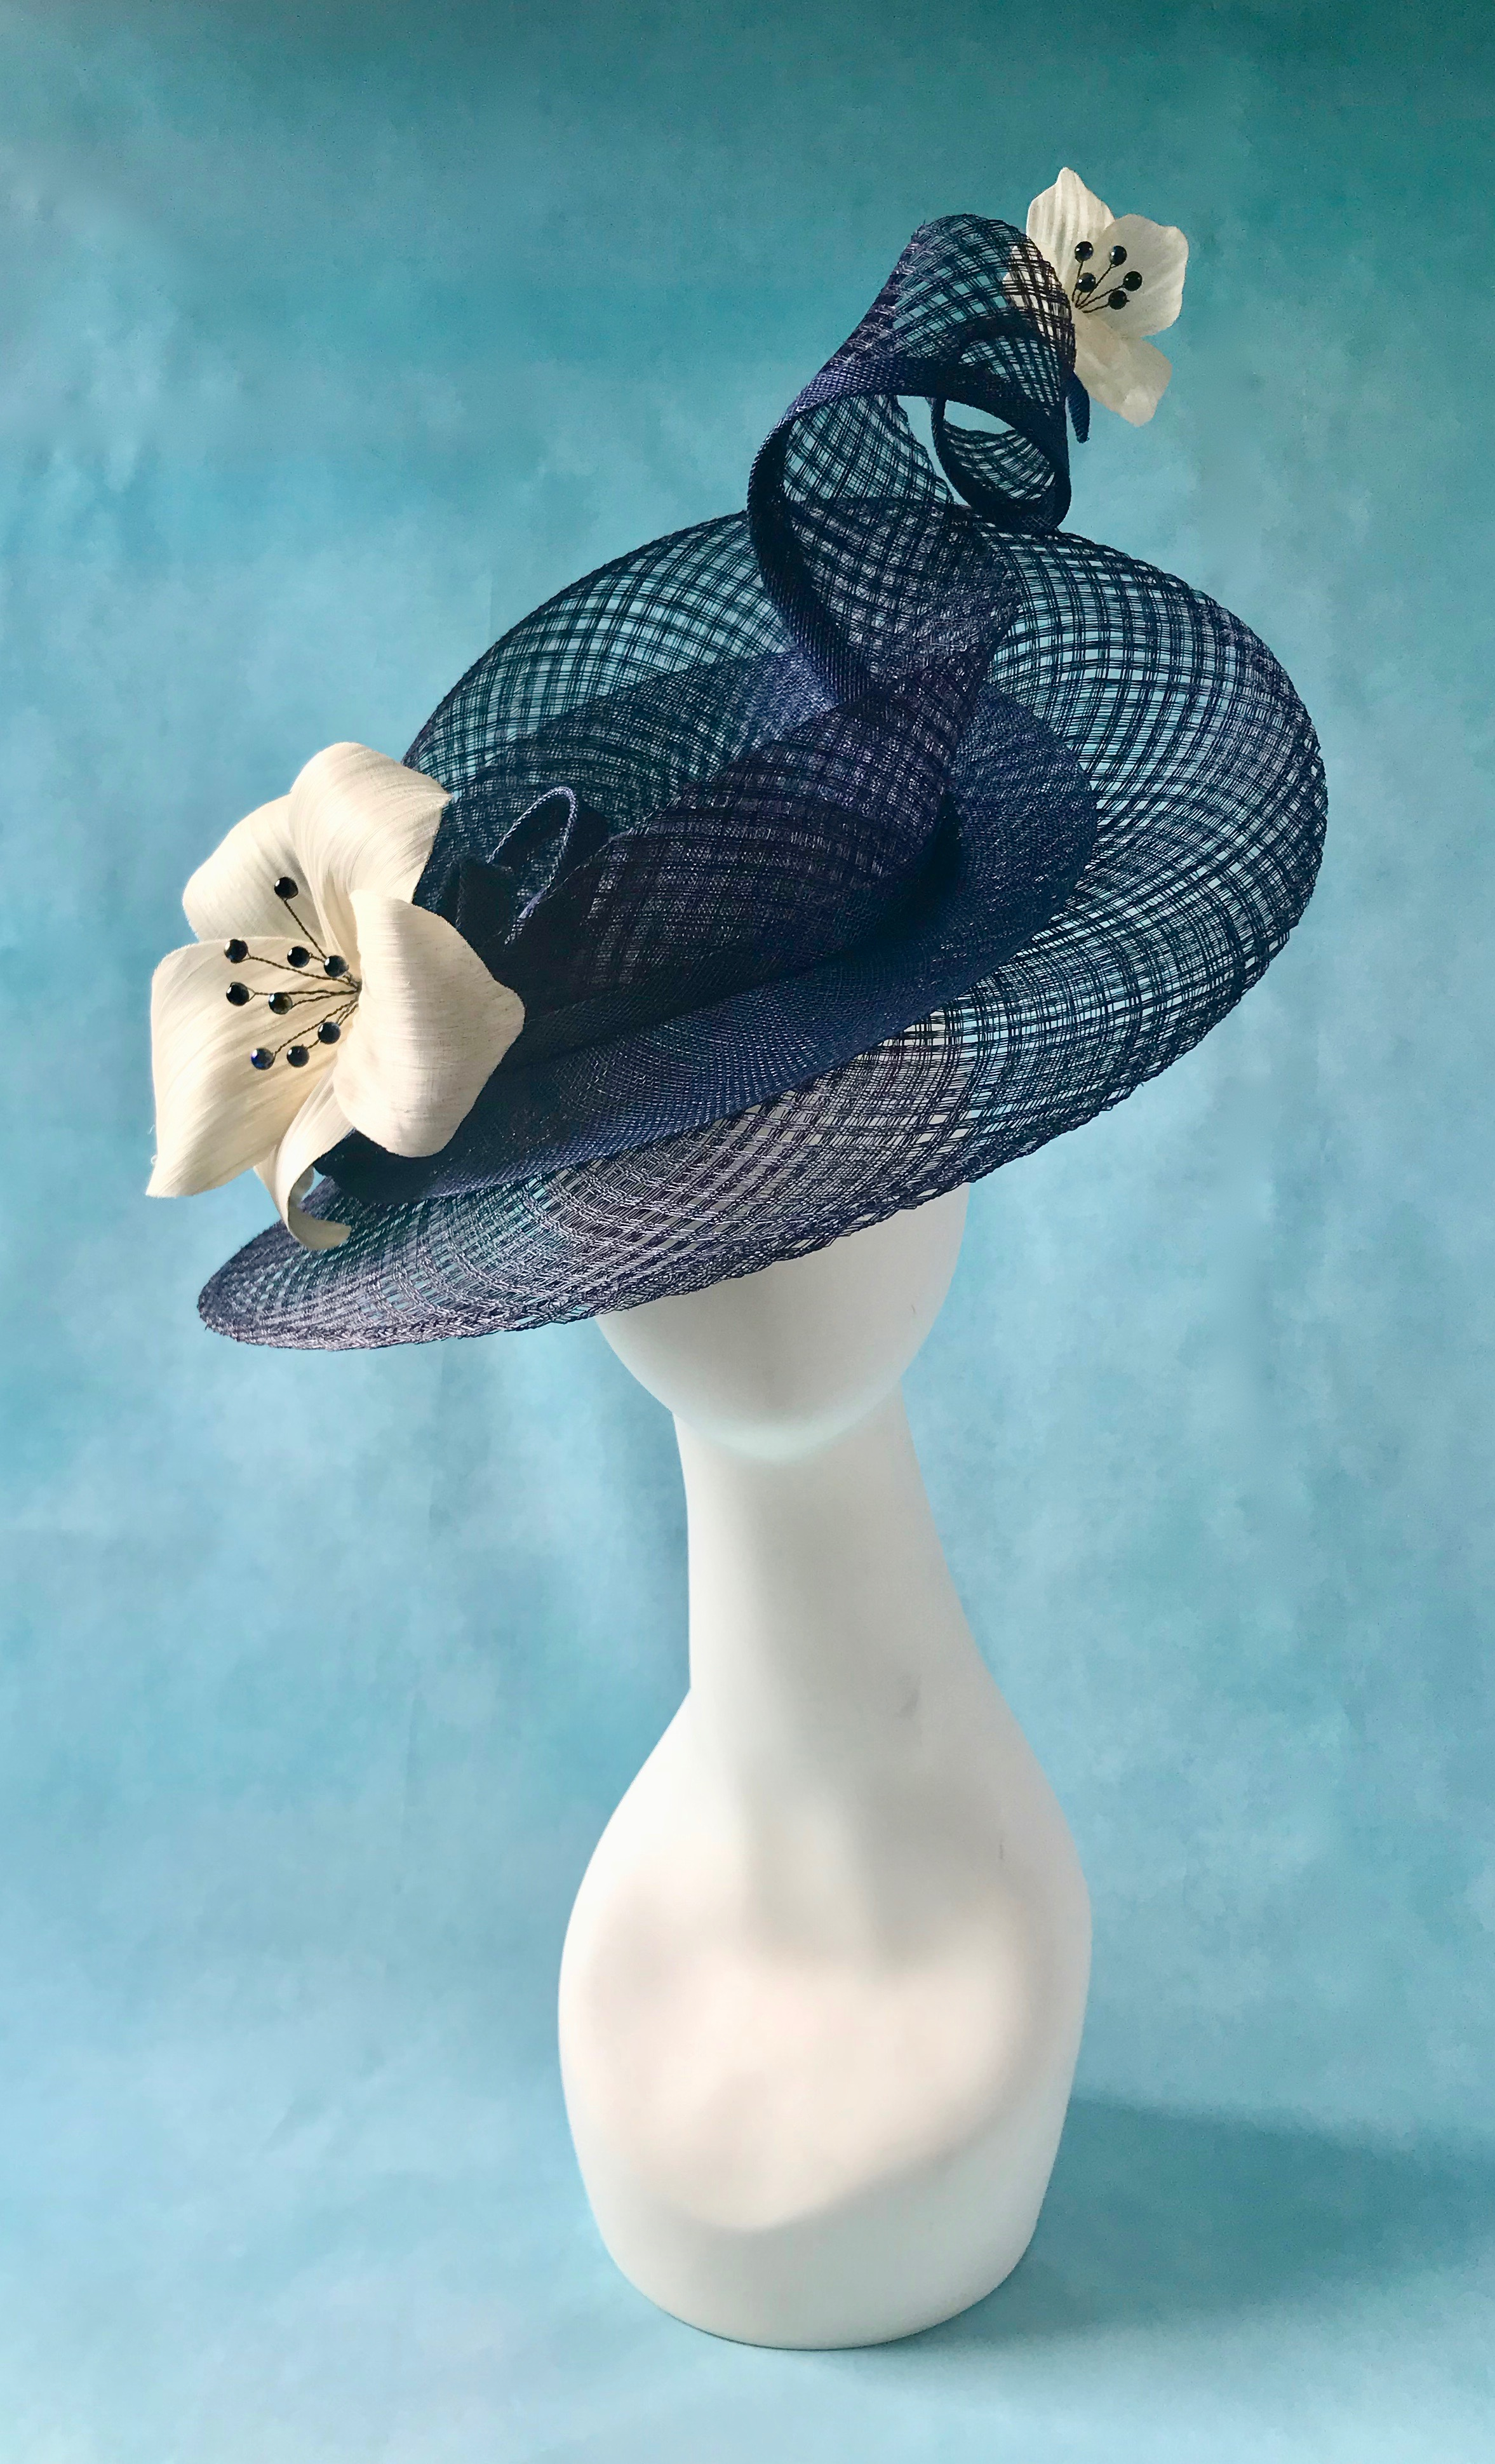 Navy and Ivory Sculptural Hat designed for Ladies Day at Royal Ascot by Isabella Josie Millinery